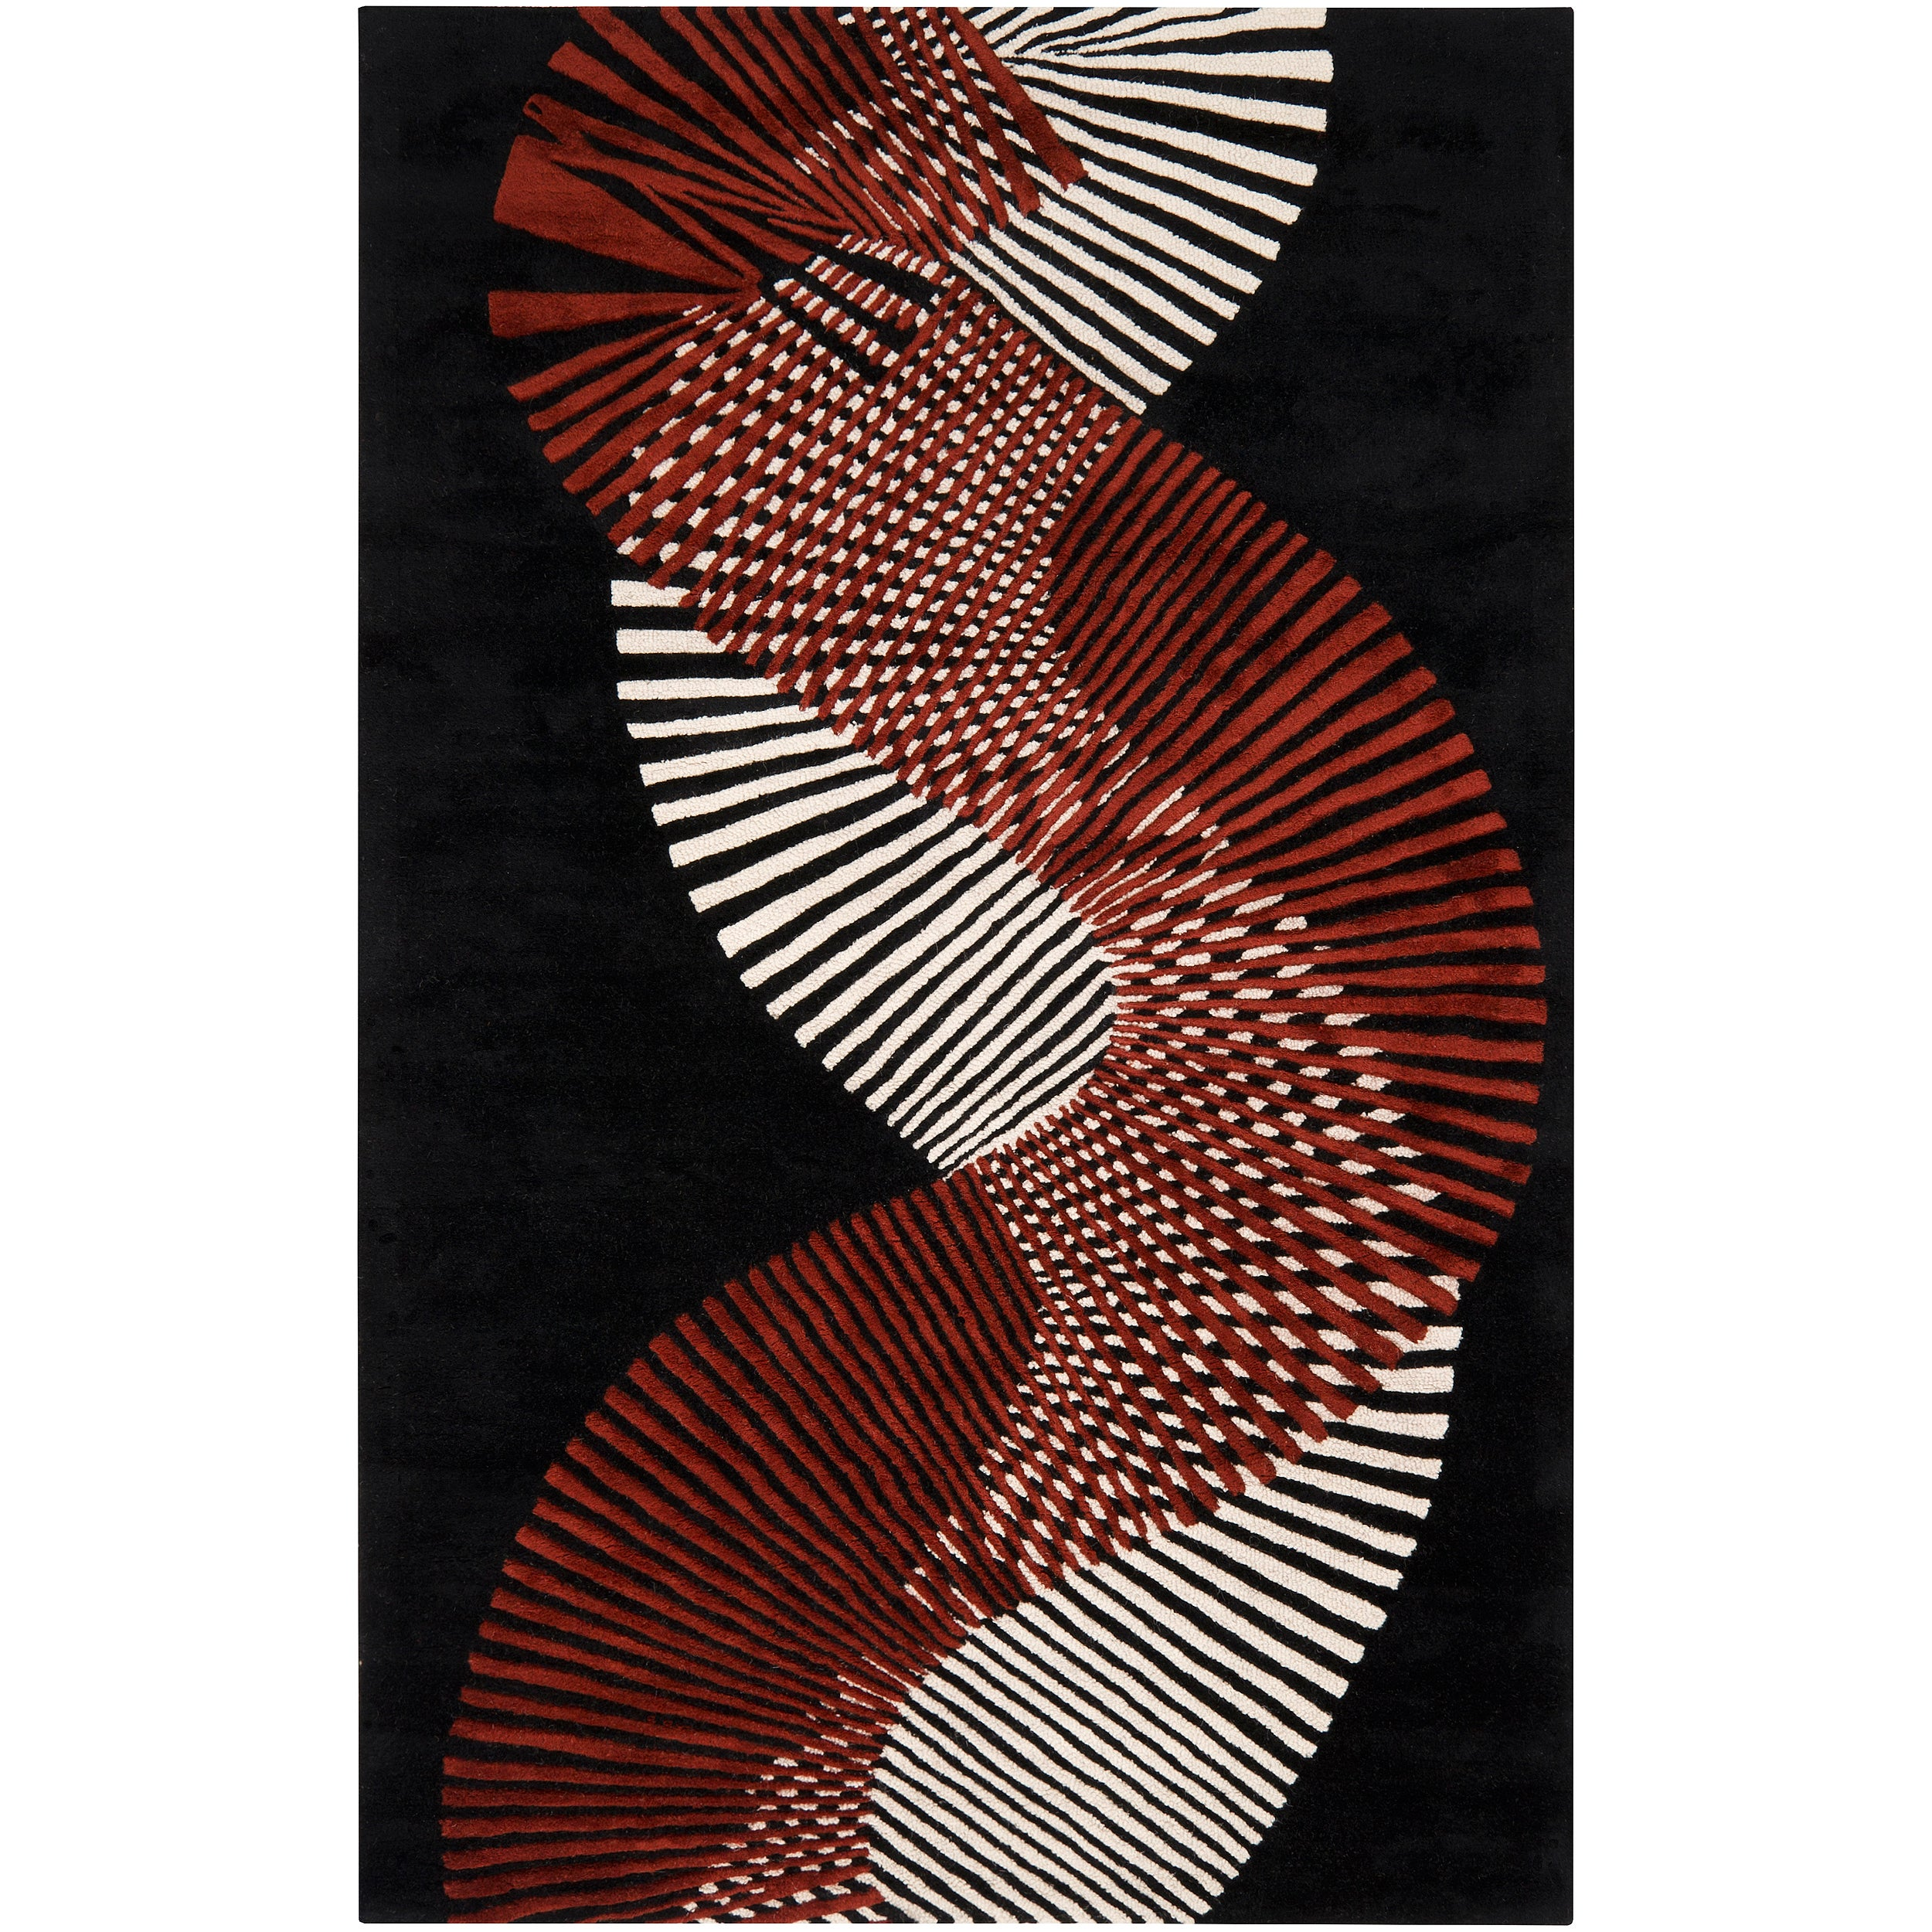 Hand-tufted Contemporary Black/Red Striped Artist Studio New Zealand Wool Abstract Rug (5' x 8')